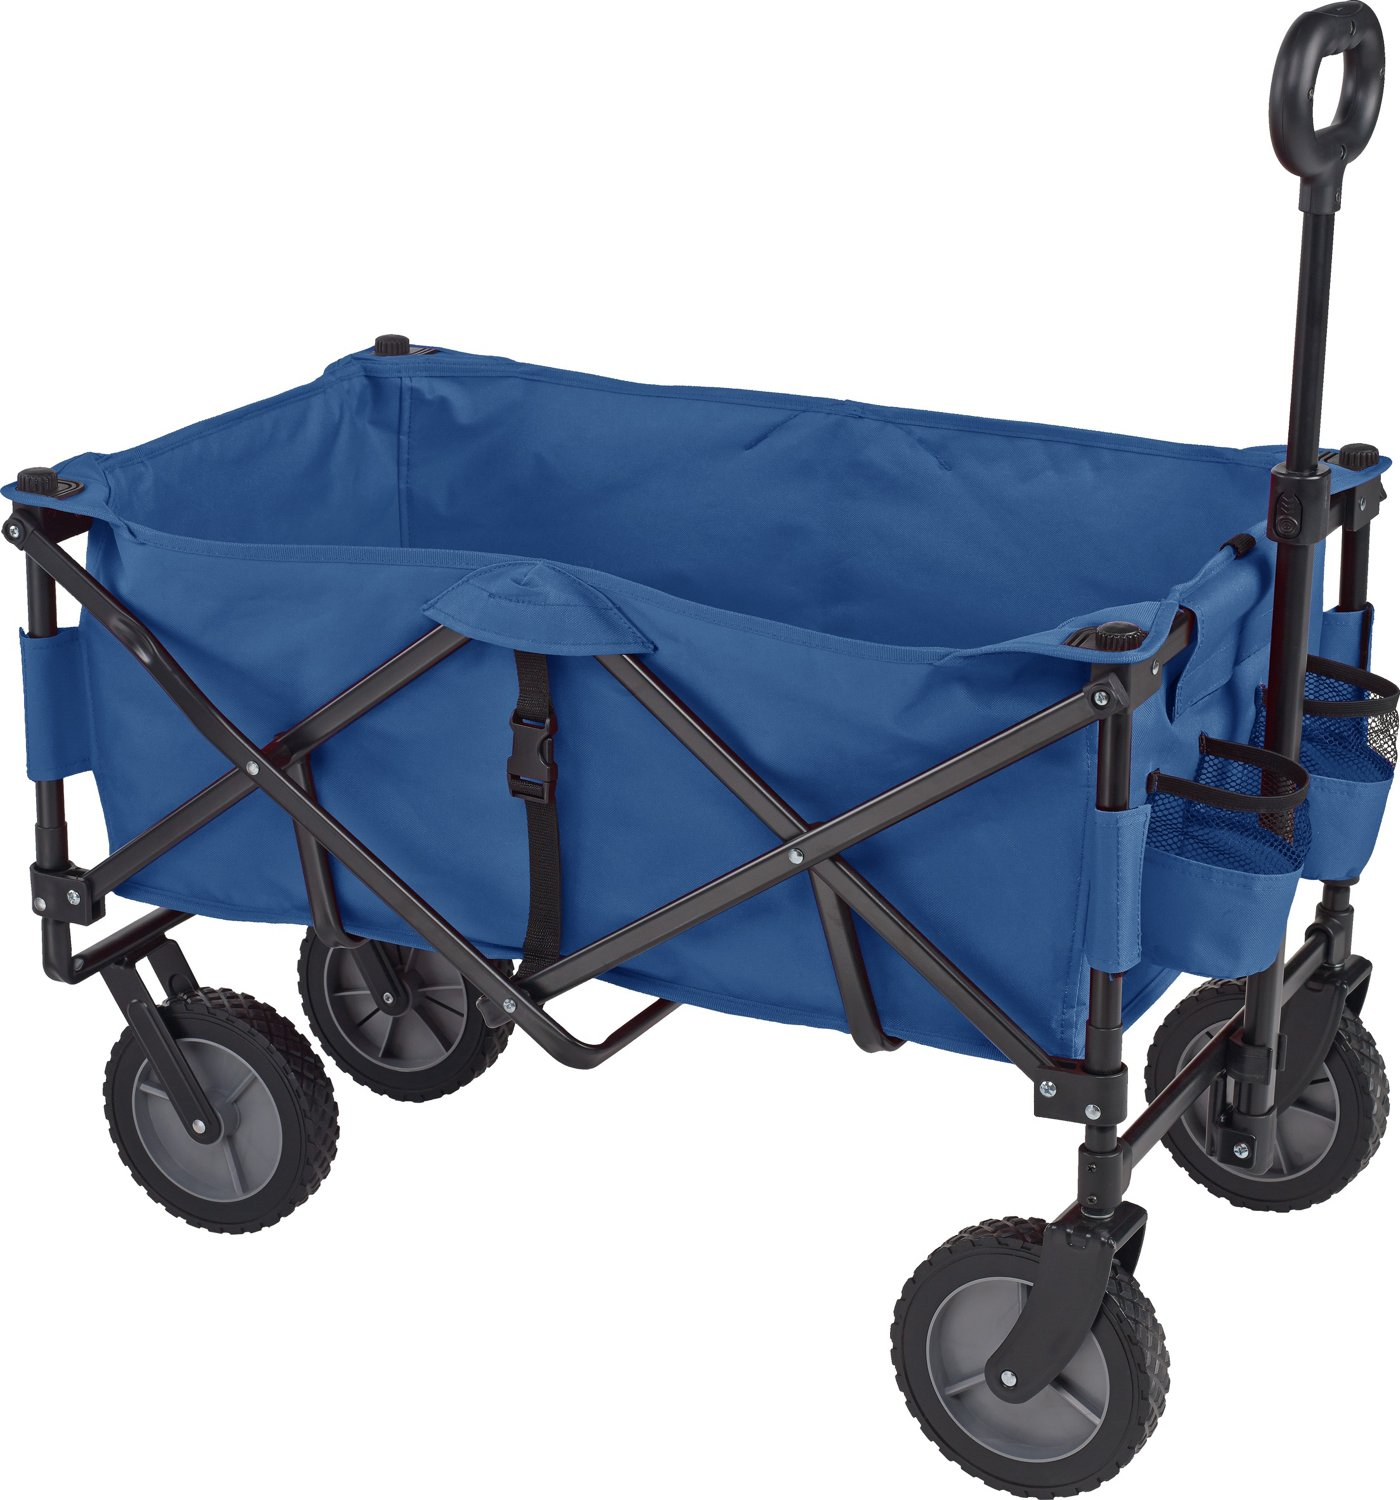 71d83b0984c1 Academy Sports + Outdoors Folding Sport Wagon with Removable Bed